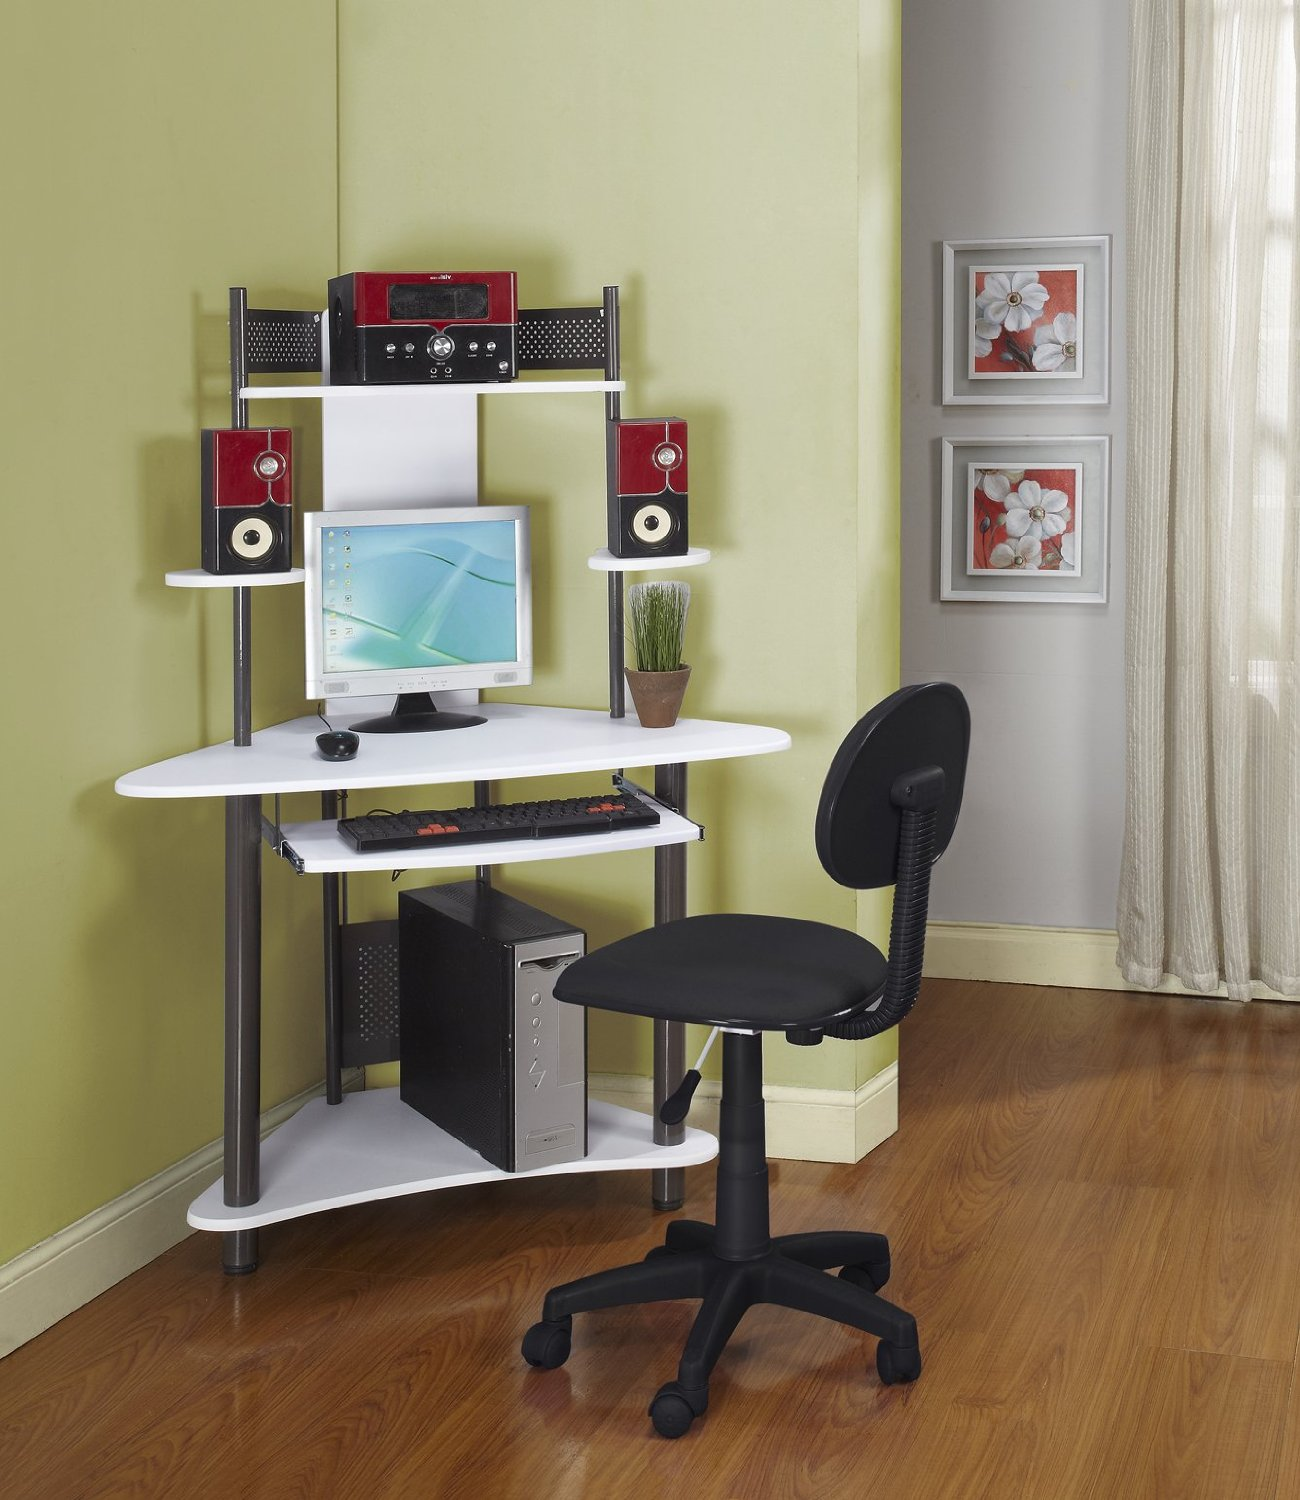 Home Office Desk: Space Saving Home Office Ideas With IKEA Desks For Small